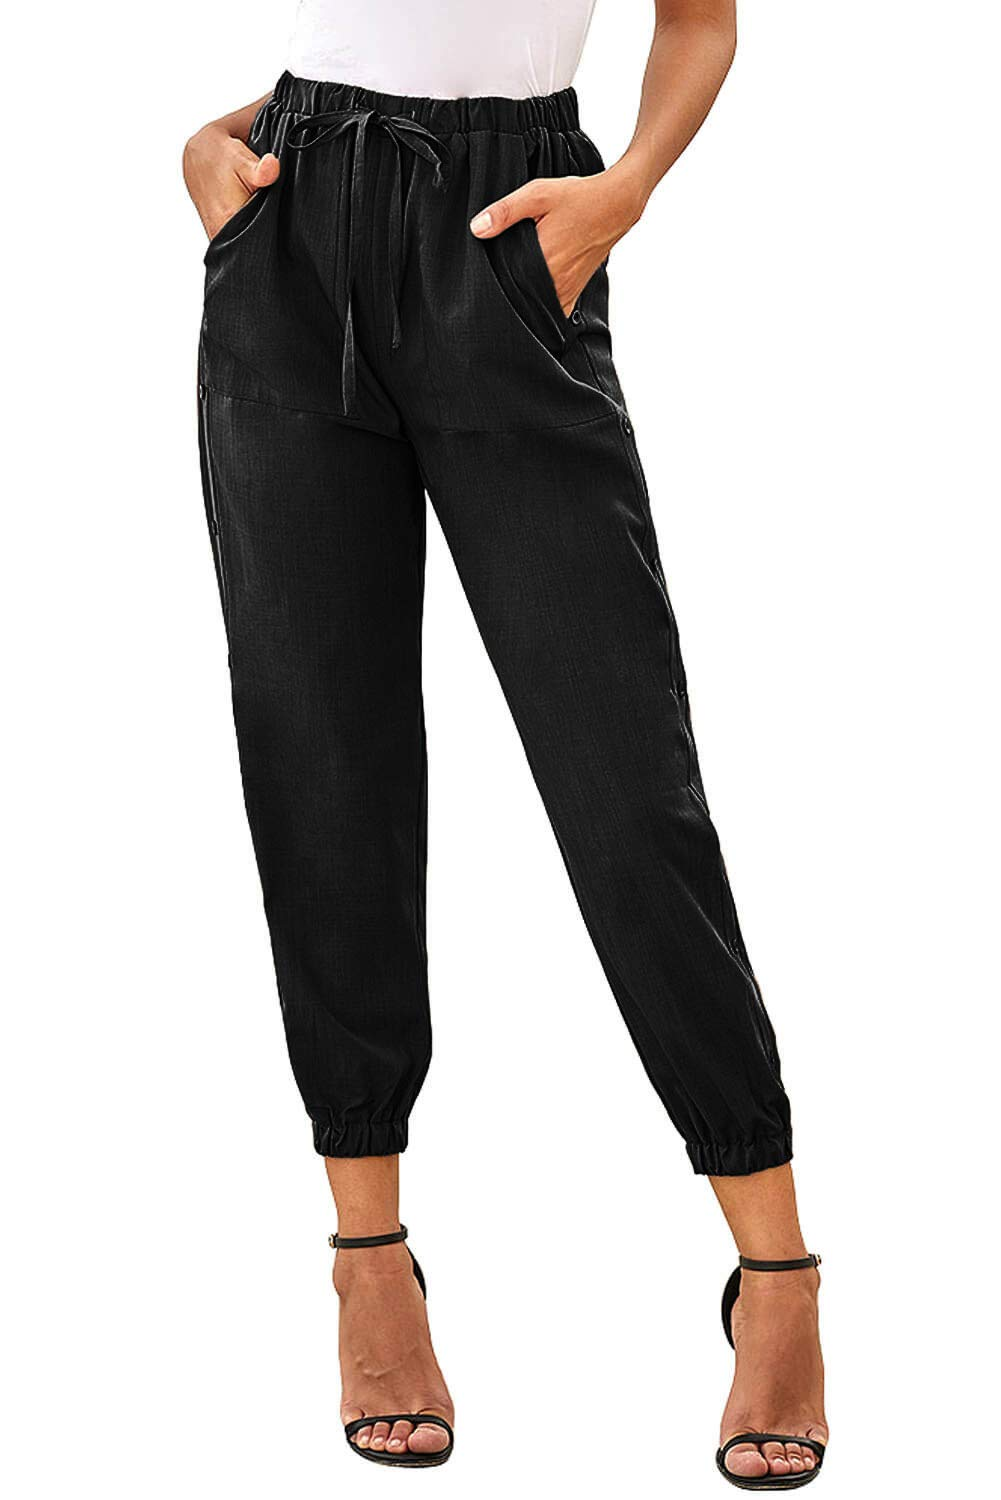 NEWFANGLE Women's Linen Casual Pants Drawstring Elastic Waist with Pockets Solid Comfy Loose Fit Trousers,Black,S